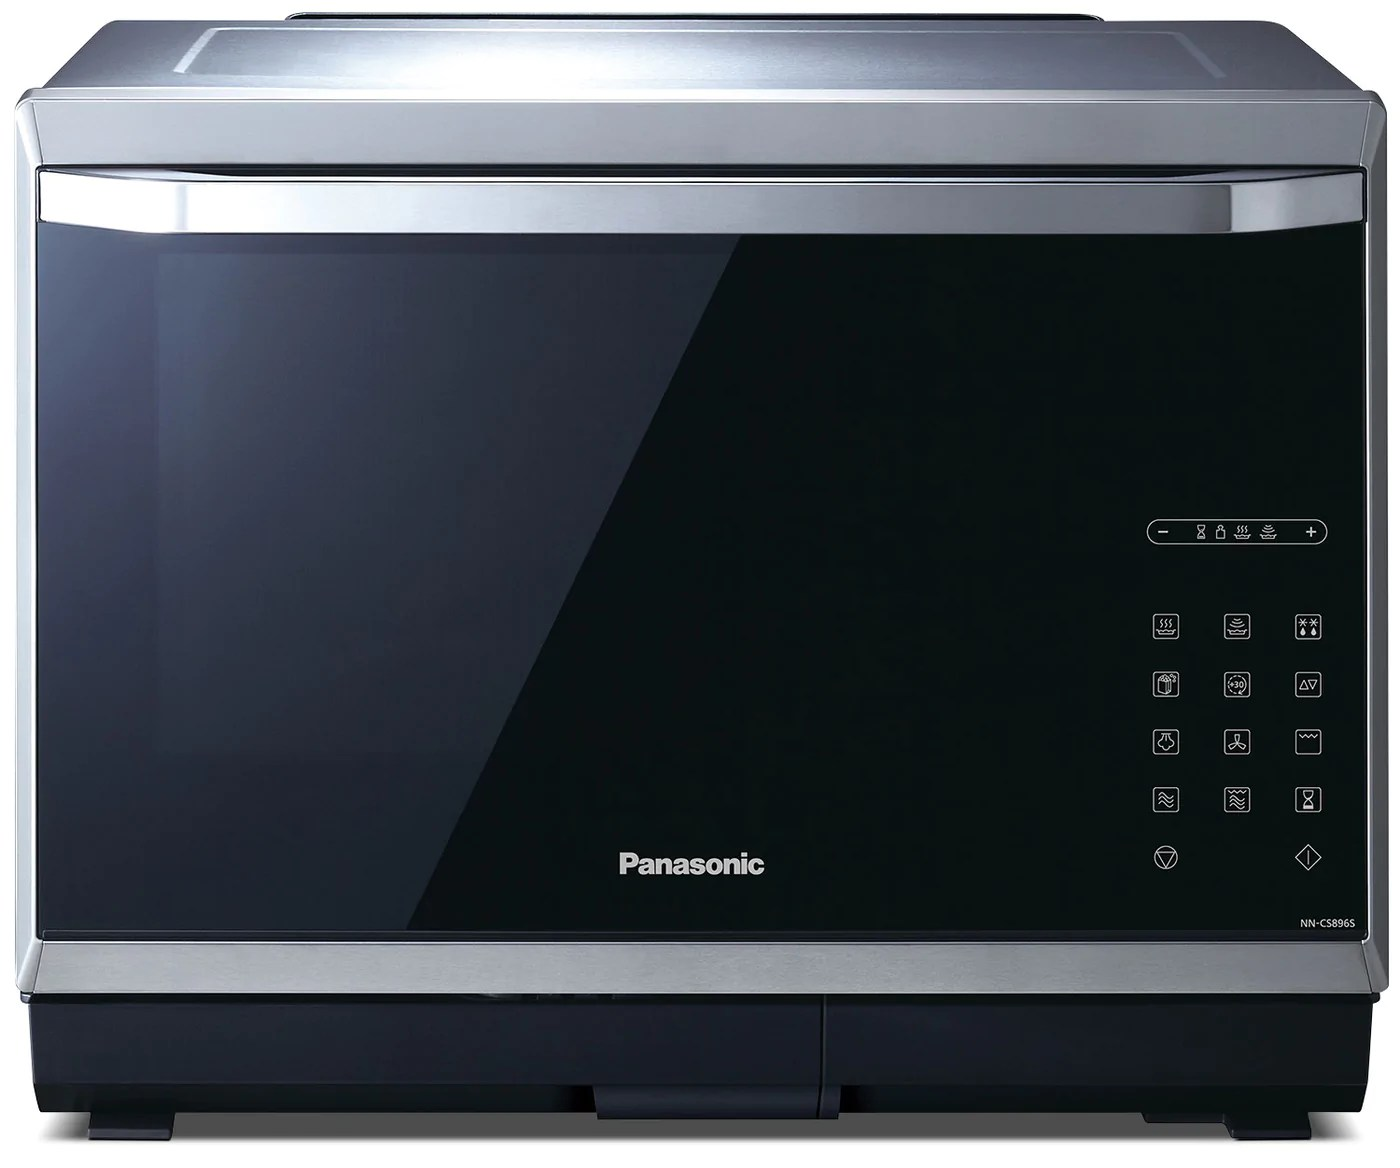 Panasonic 1 2 Cu Ft Steam Convection Countertop Microwave Nncs896s The Brick